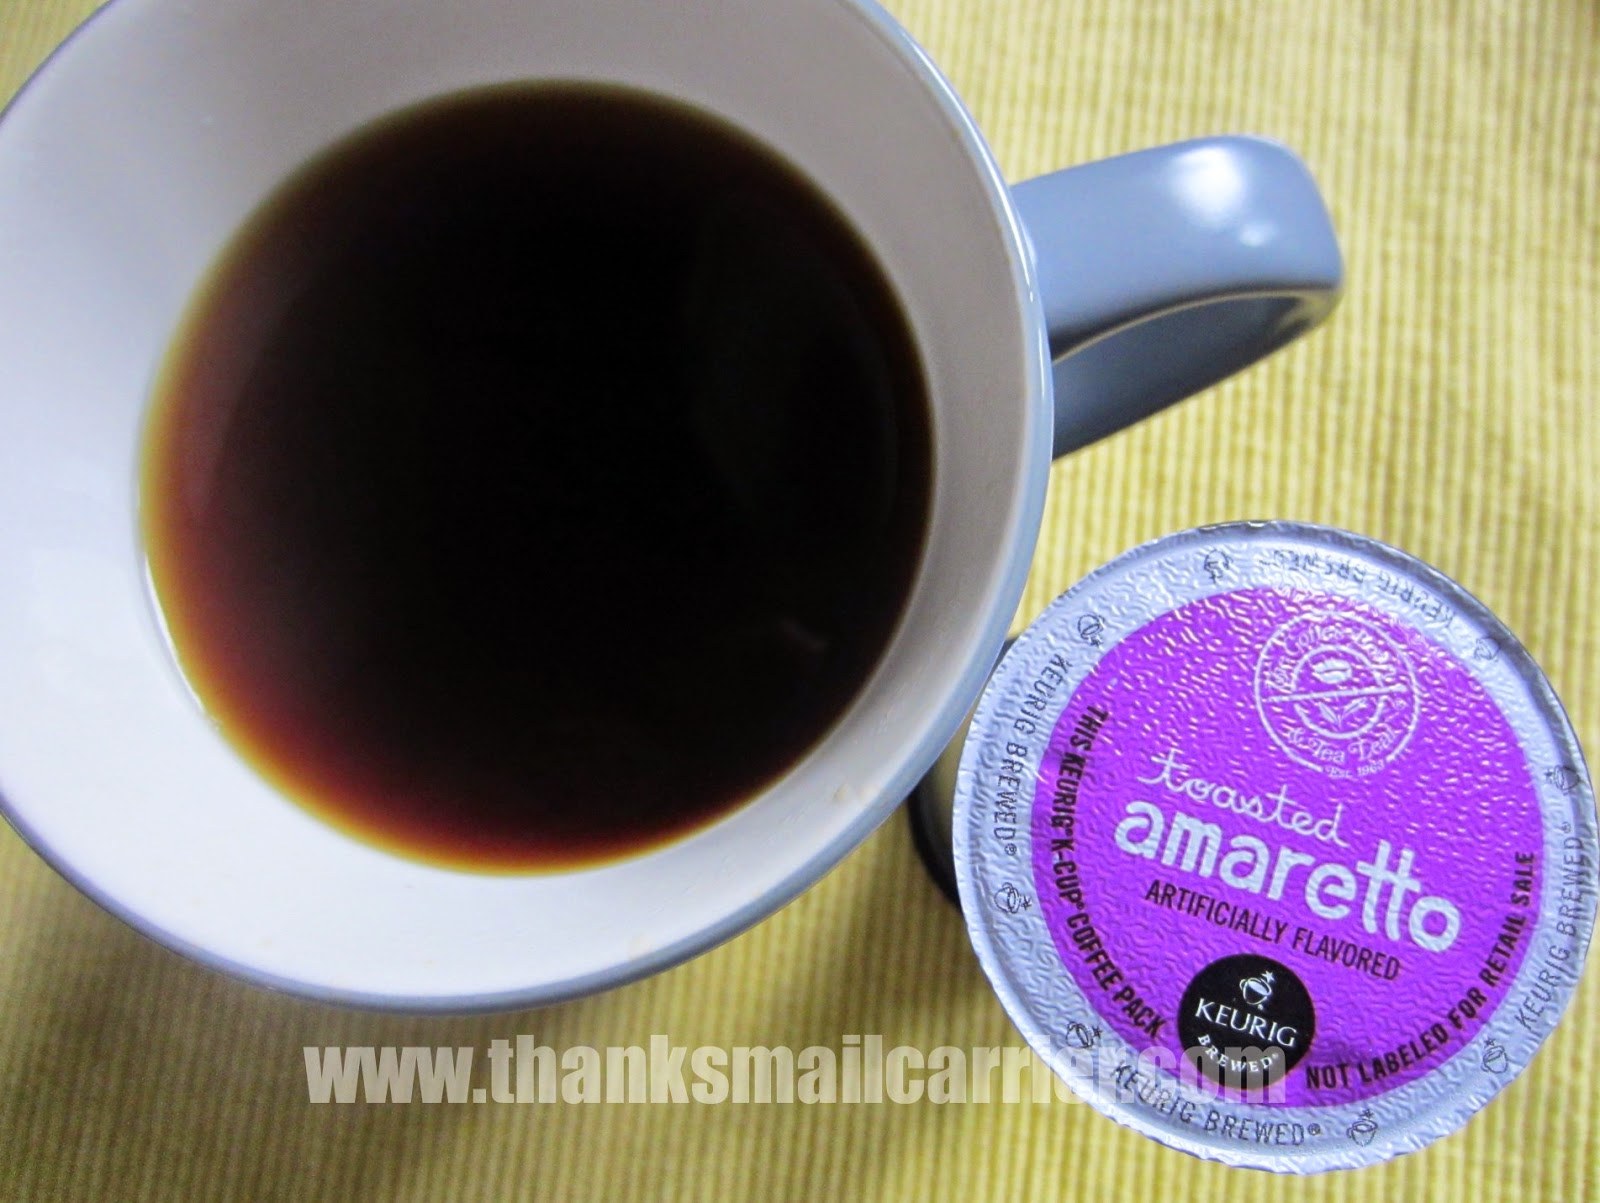 CBTL Toasted Amaretto